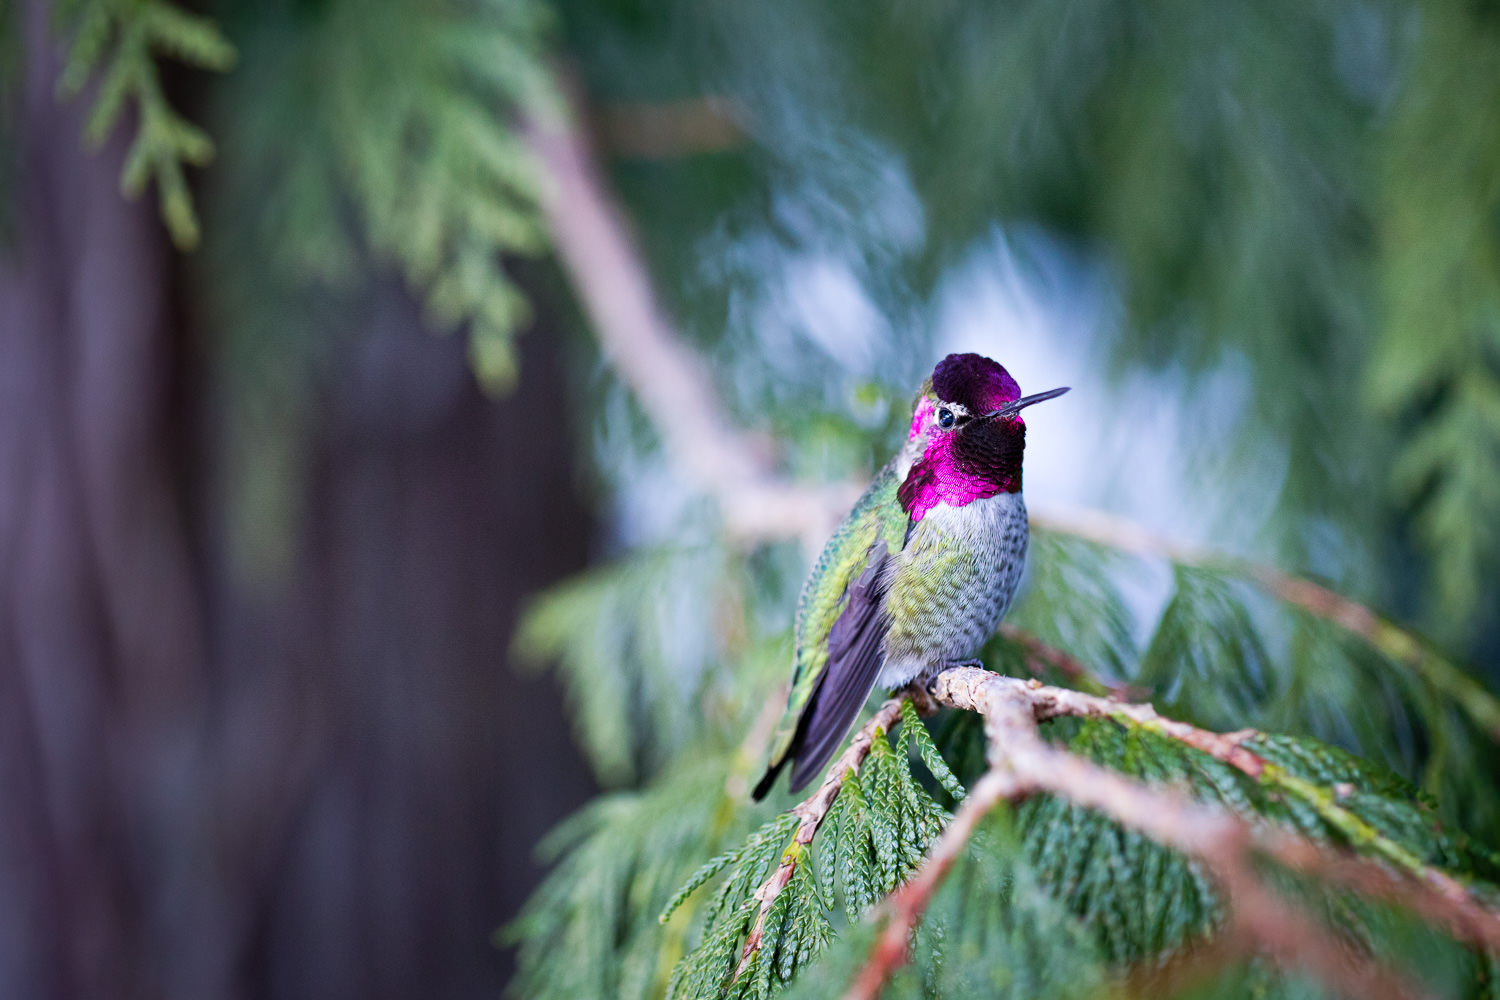 A male Anna's hummingbird sits perched on the branch of a cedar tree. After closely watching this little guy's patterns early each morning, I noticed he tended to land in a few particular places. So, with the hopes of capturing an image of him in his natural setting, I carefully set up my camera with remote shooting and began to watch the branch for the next 4 hours. Getting the timing and focus just right was extremely tough but after some narrowly missed attempts, it finally worked out! It took a lot of patience and planning to create this image but I'm super happy with it and have a newfound love for this beautiful bird.  Canon 5D MK4 | 100mm f/2.8L IS Macro lens | 1/400 sec | f/3.5 | ISO 1600.